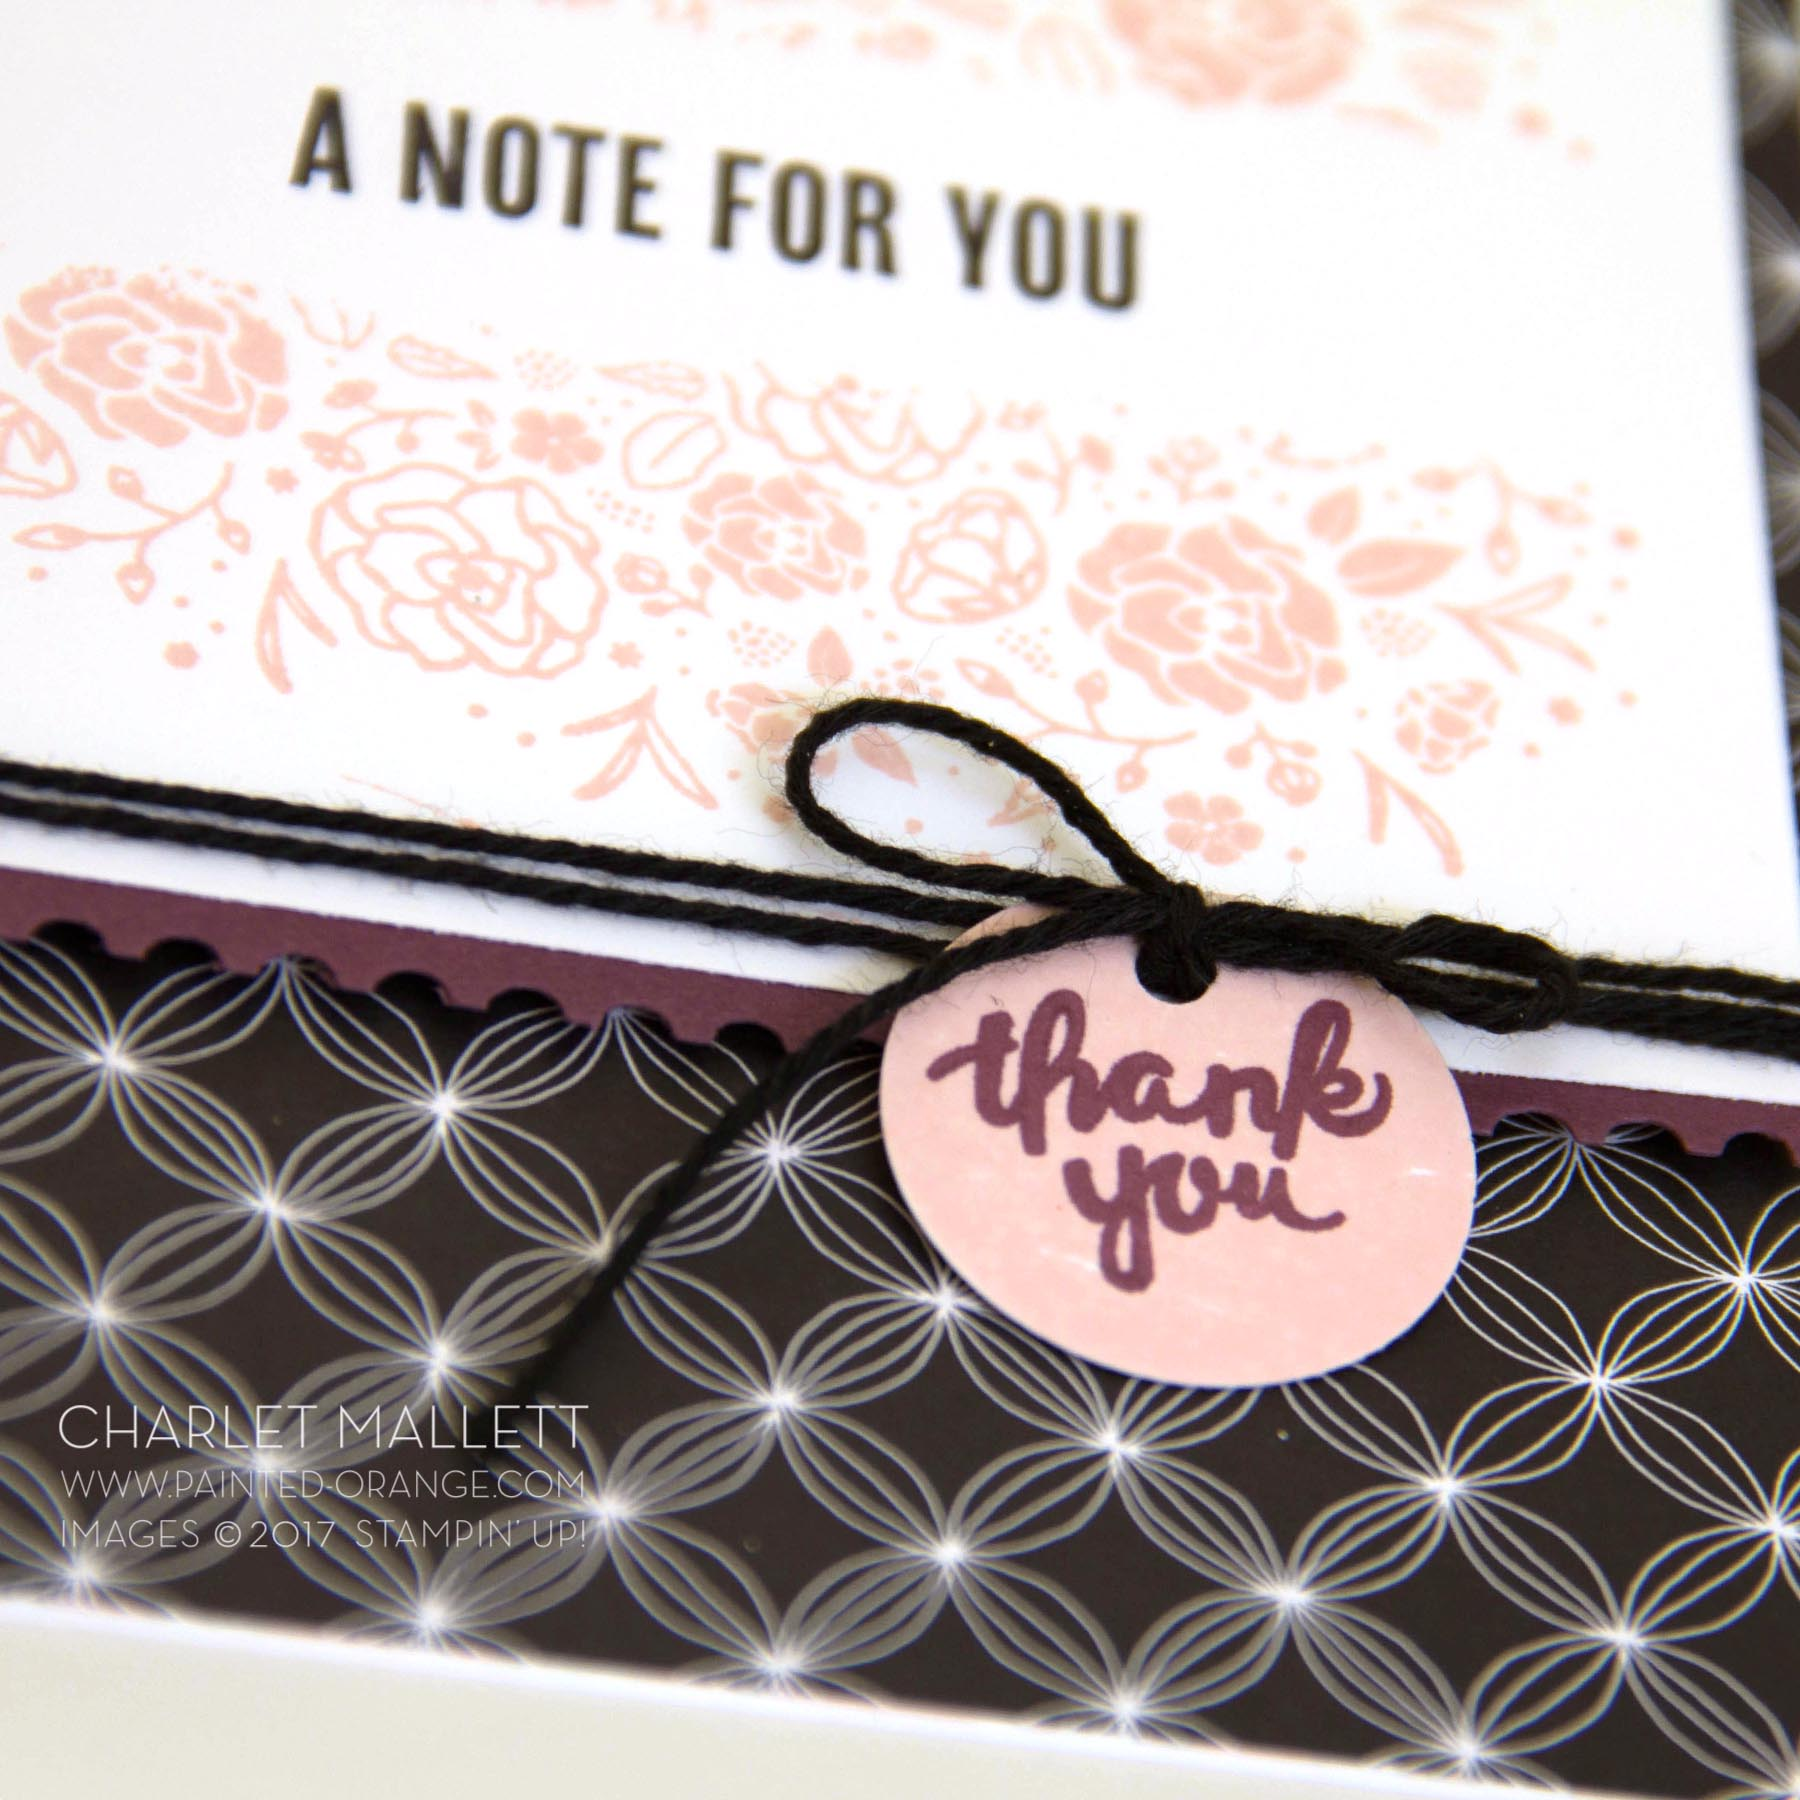 Wood Words - A Note For You card, Charlet Mallett - Stampin' Up!